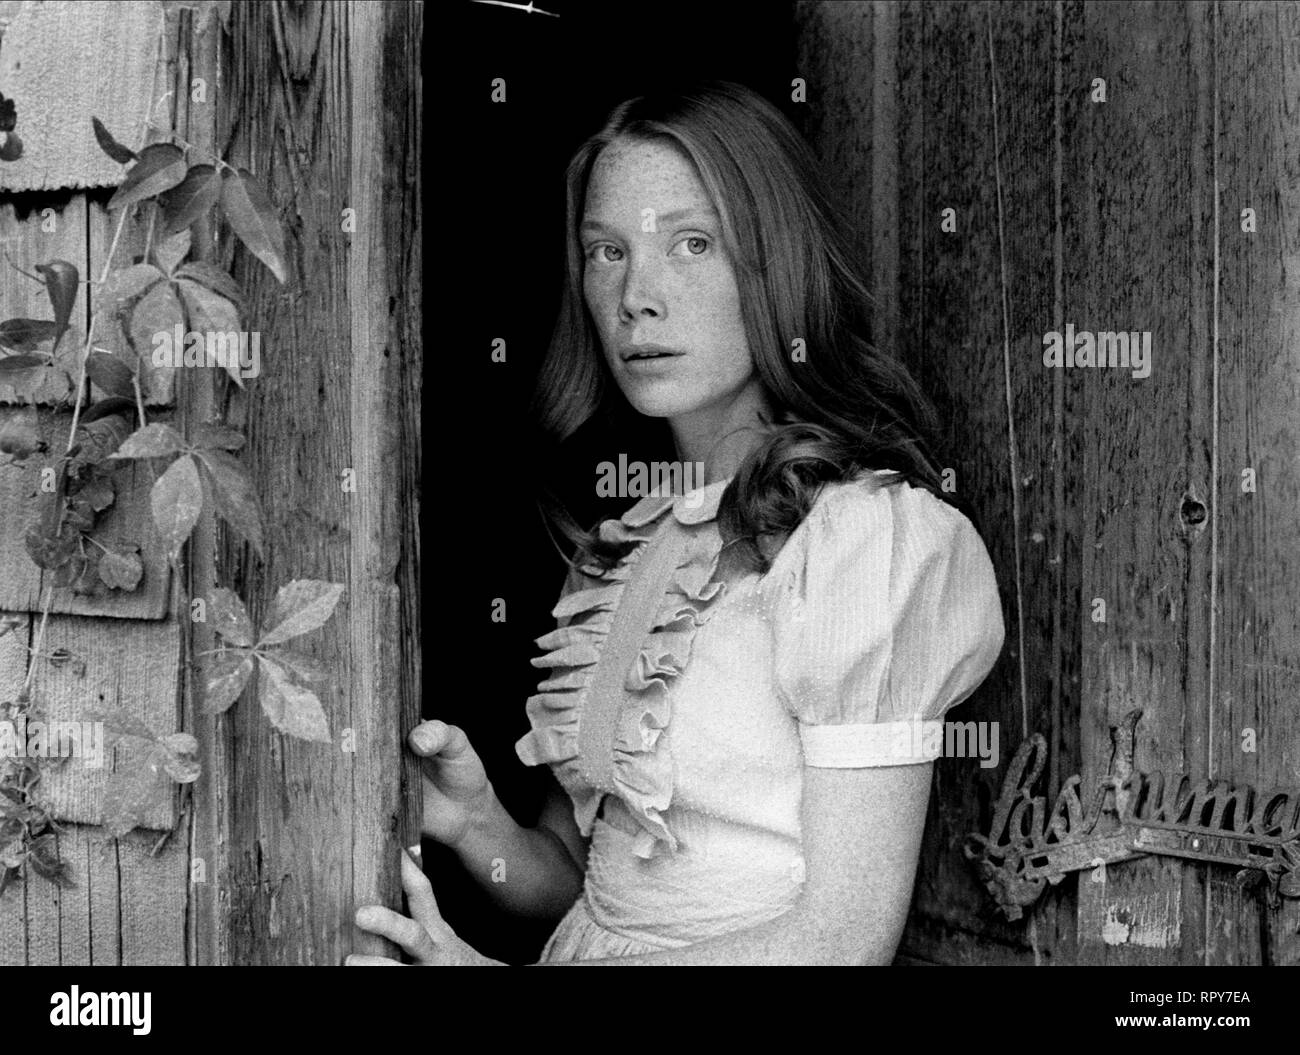 SISSY SPACEK, BADLANDS, 1973 Stock Photo